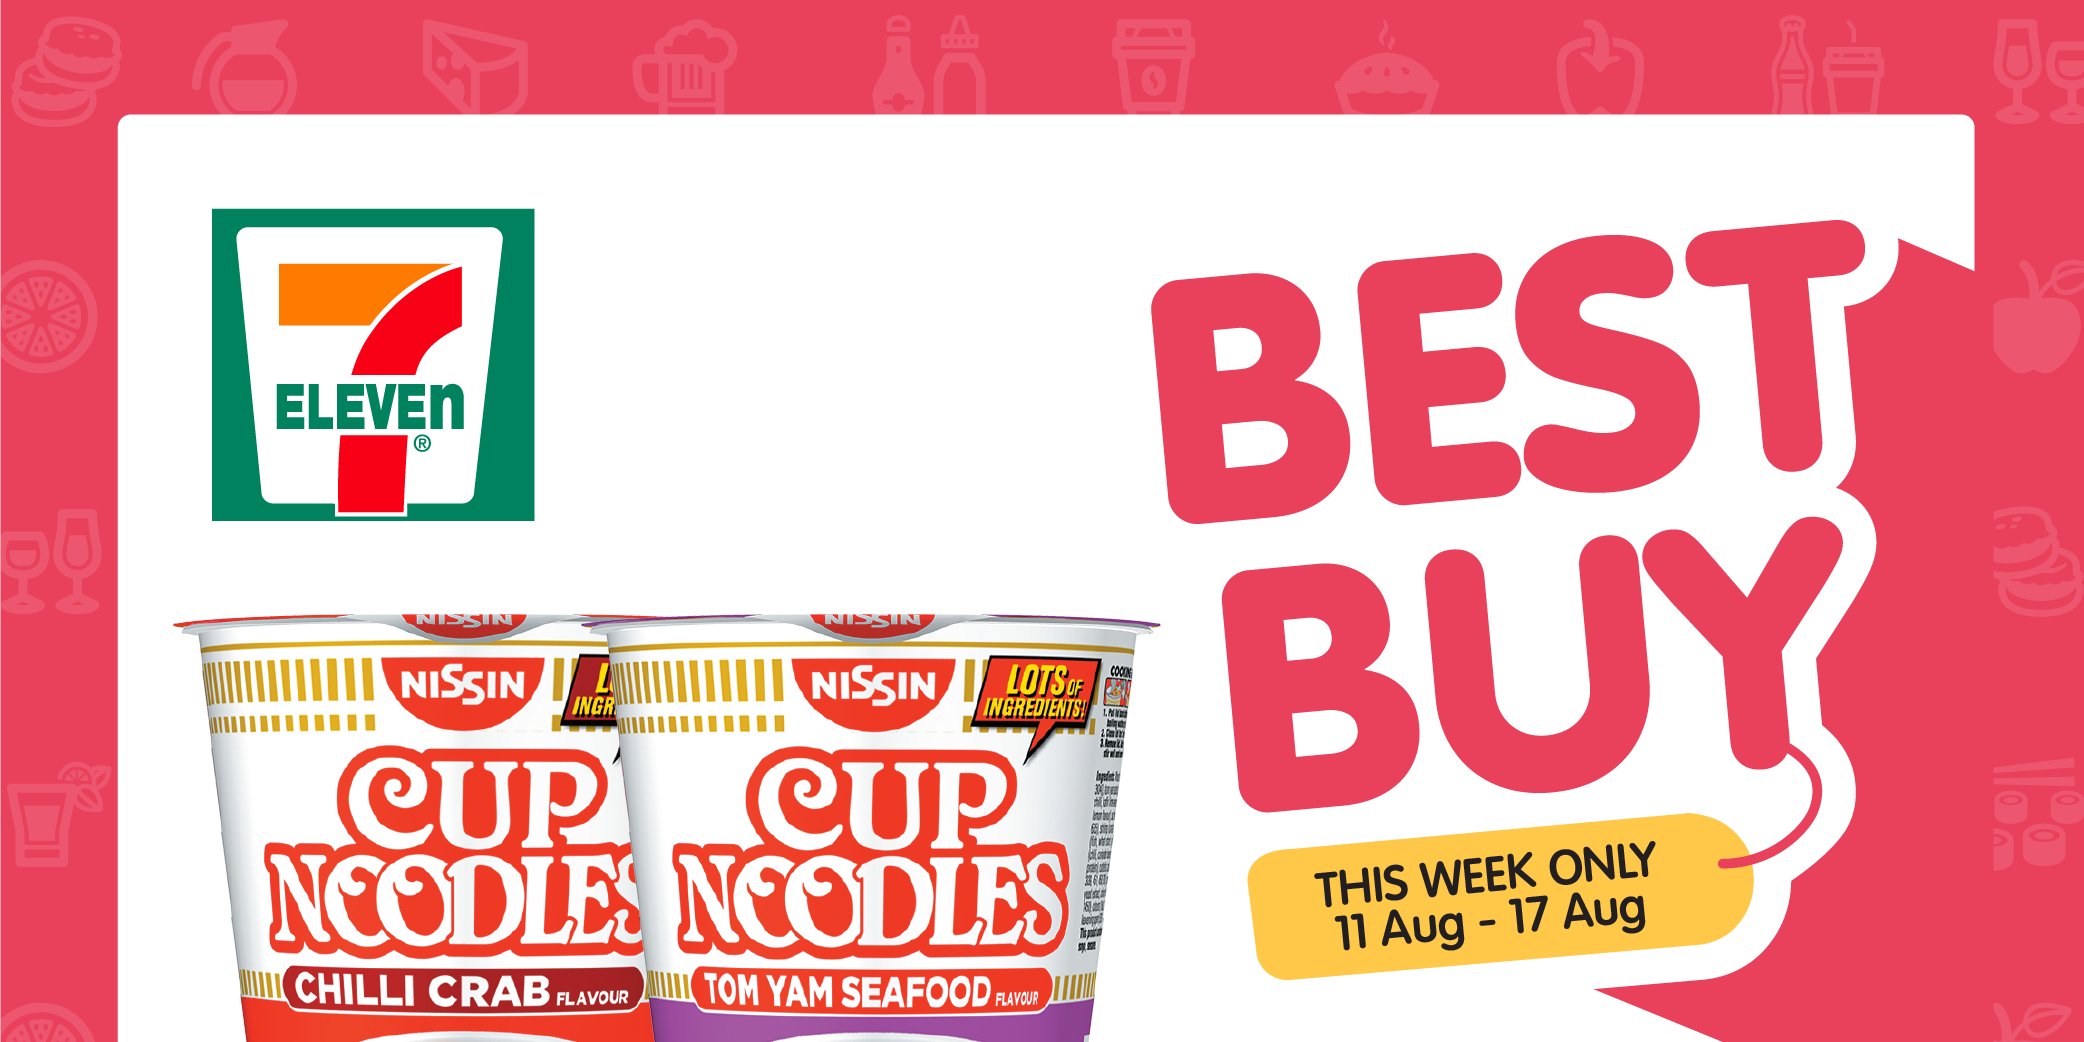 7-Eleven Weekly BEST BUY – Nissin Cup Noodles (11 Aug – 18 Aug)